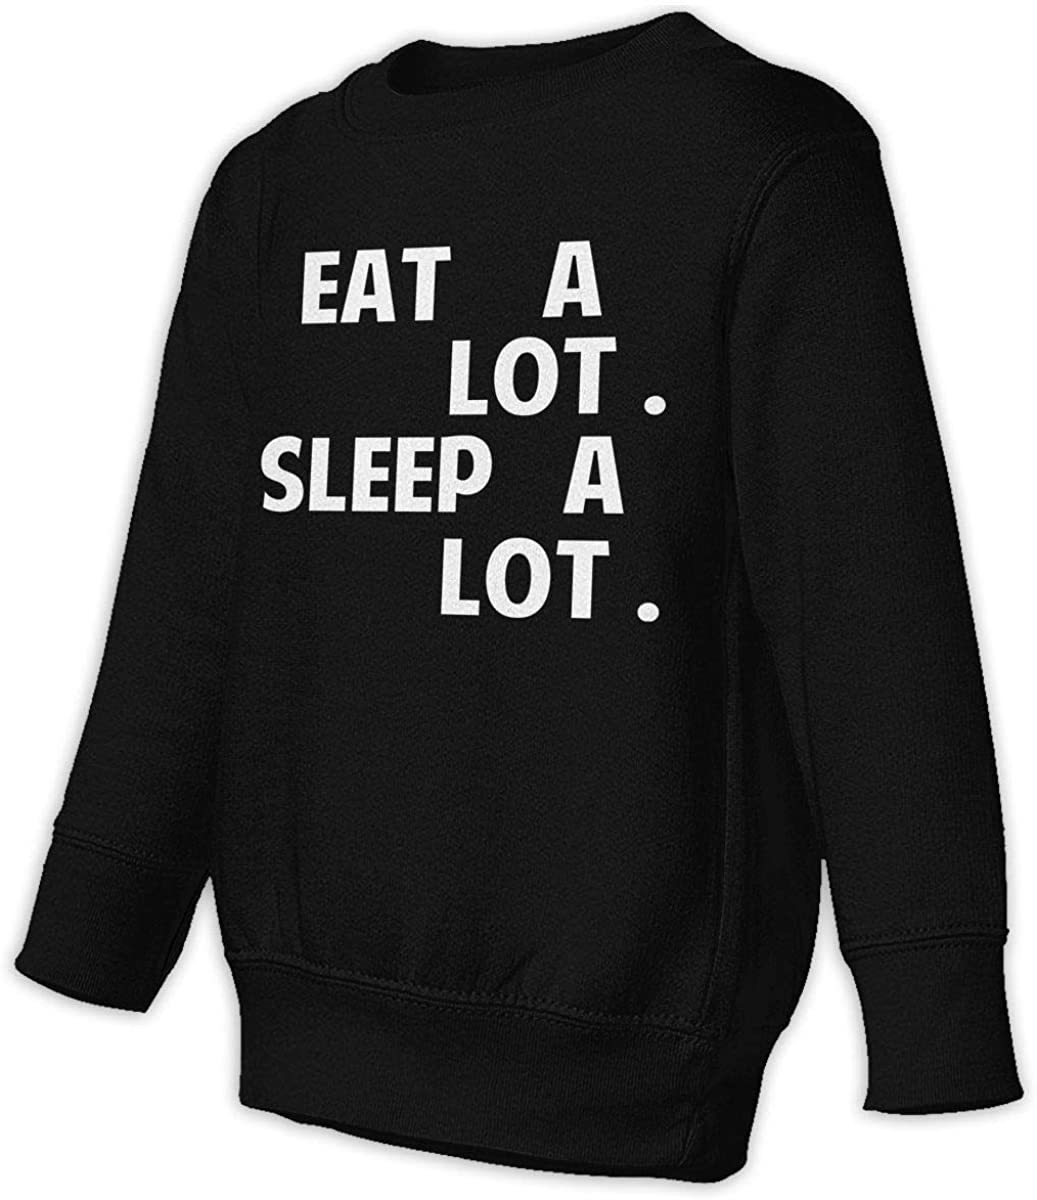 wudici Eat A Lot Sleep A Lot Boys Girls Pullover Sweaters Crewneck Sweatshirts Clothes for 2-6 Years Old Children